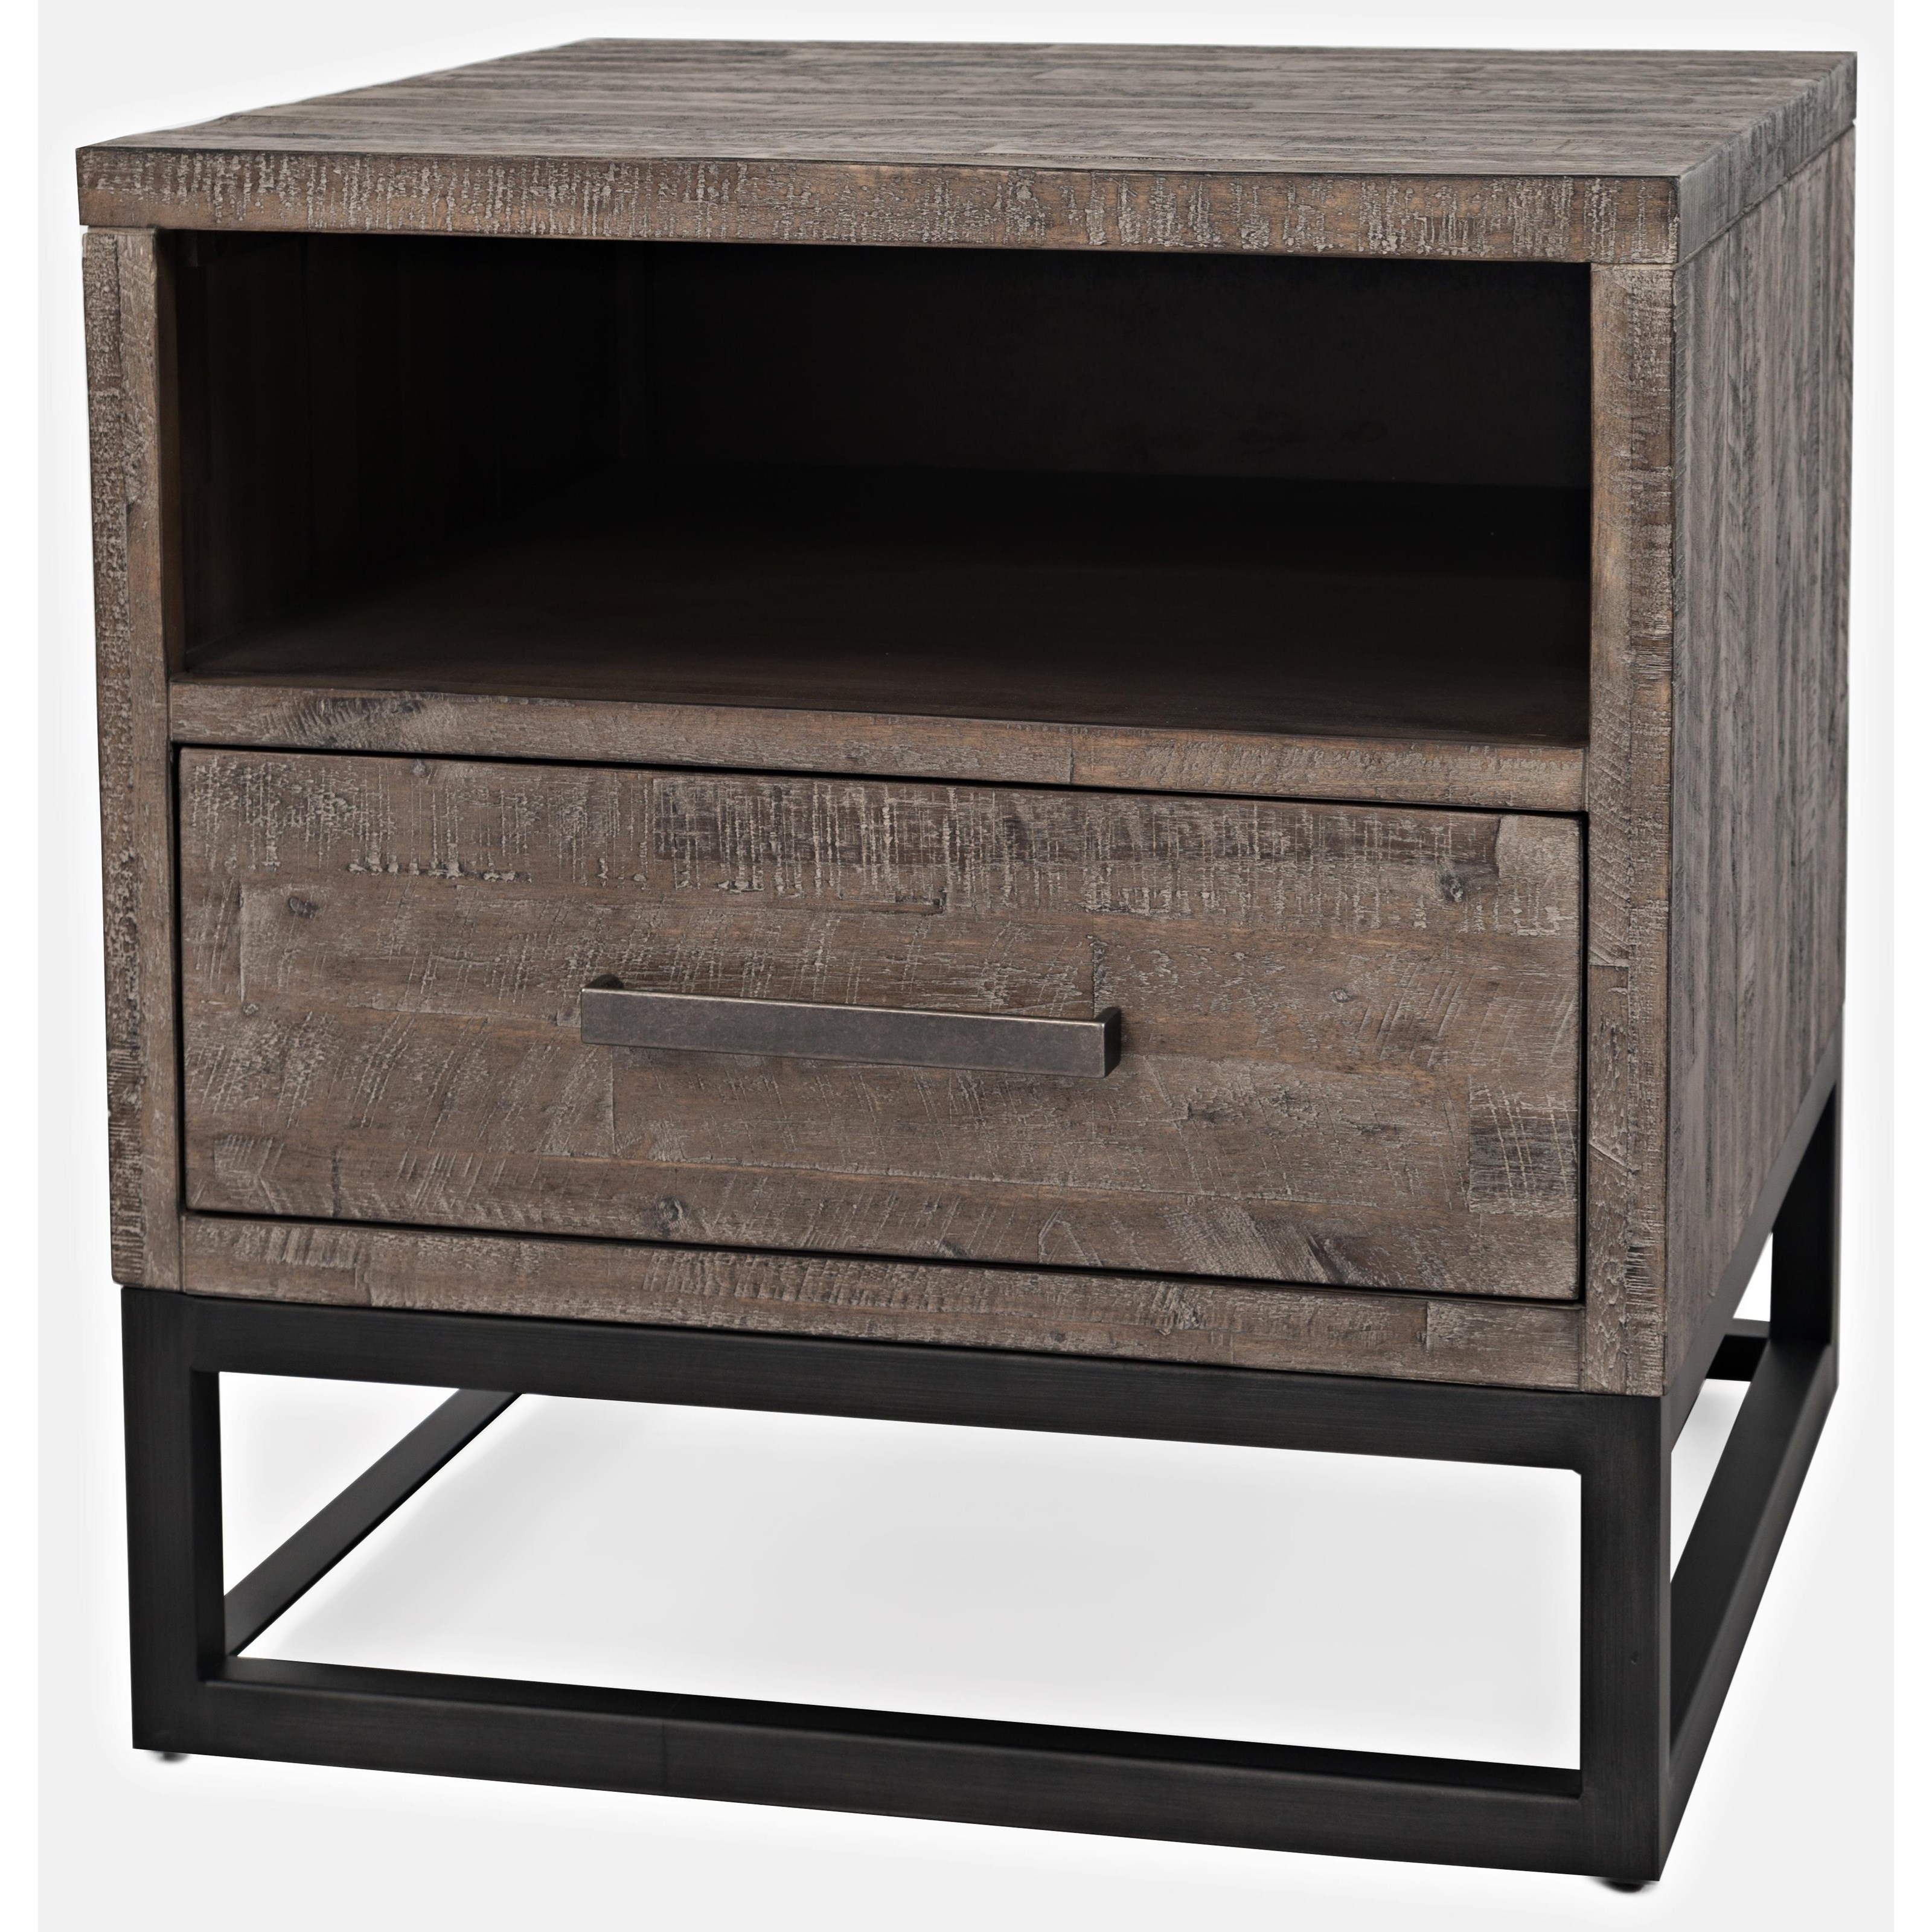 East Hampton End Table by Jofran at Darvin Furniture